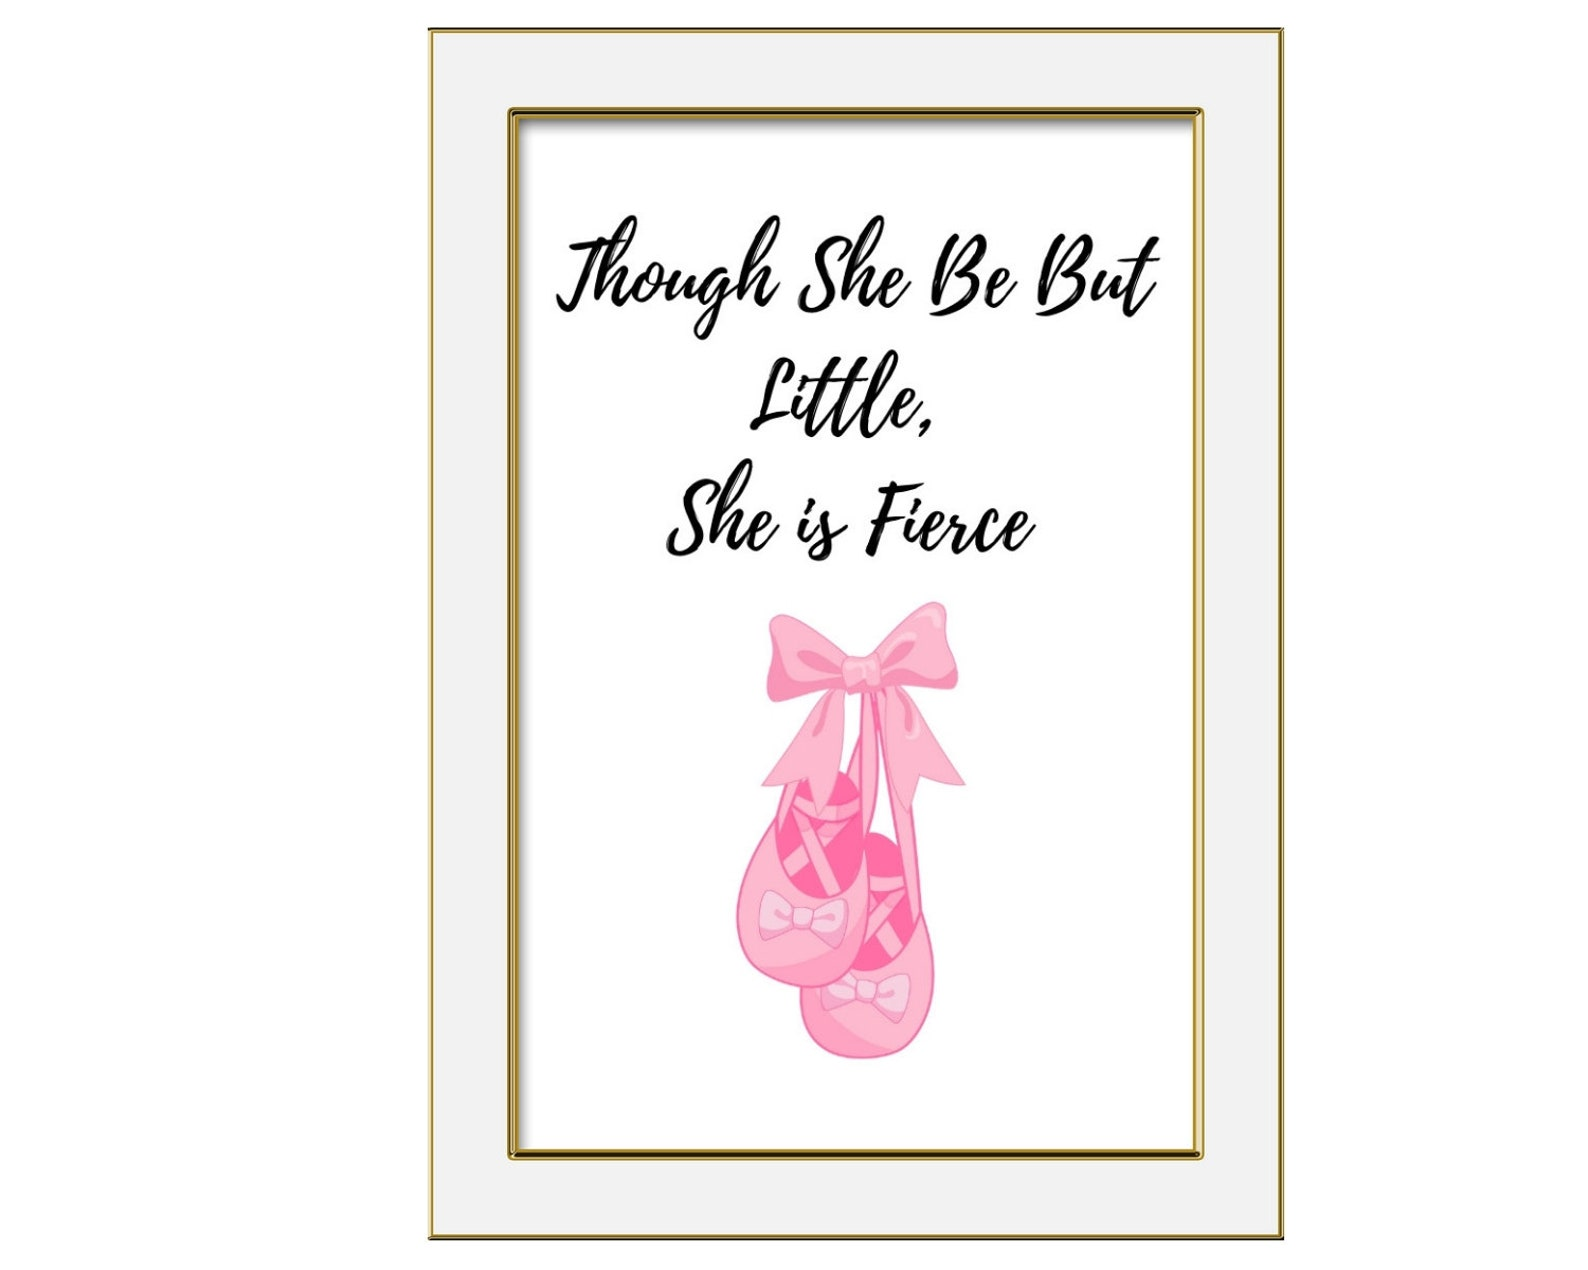 ballet printable nursery wall art, instant digital, though she be little she is fierce, pink ballerina shoes, baby girl nursery